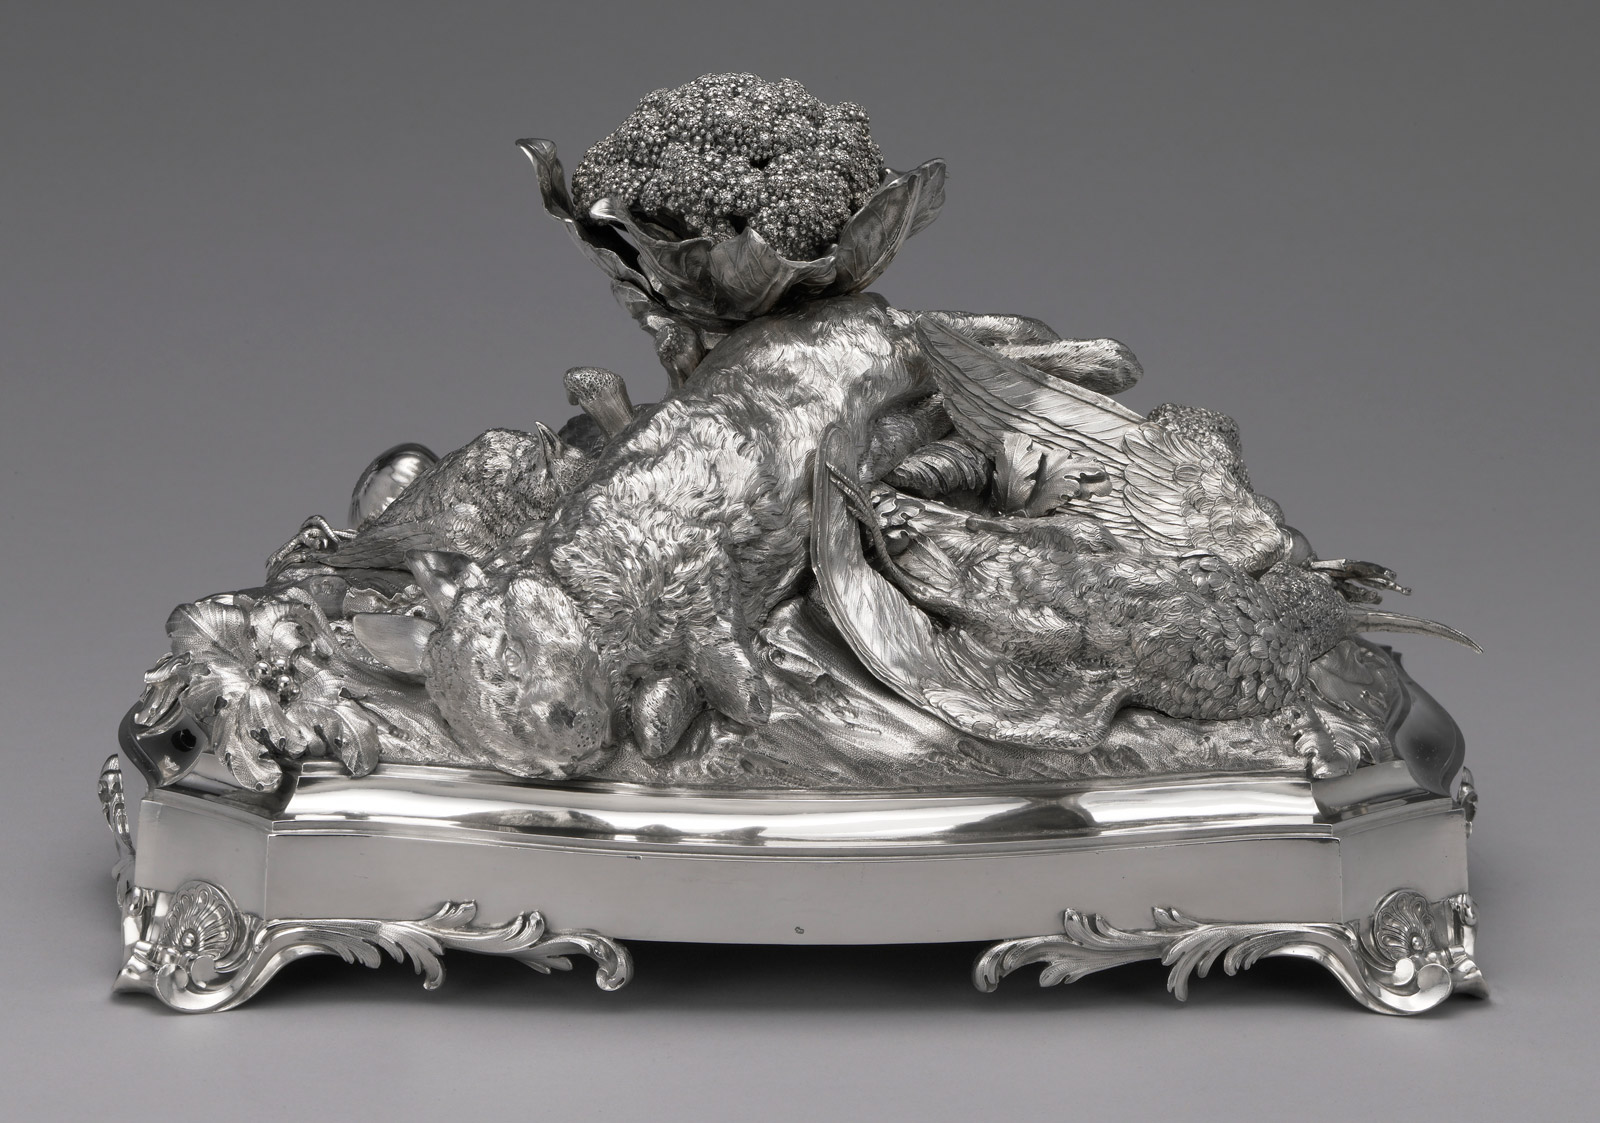 A silver centerpiece consisting of a still life of a rabbit, a bird, and leafy vegetables and a head of cauliflower.